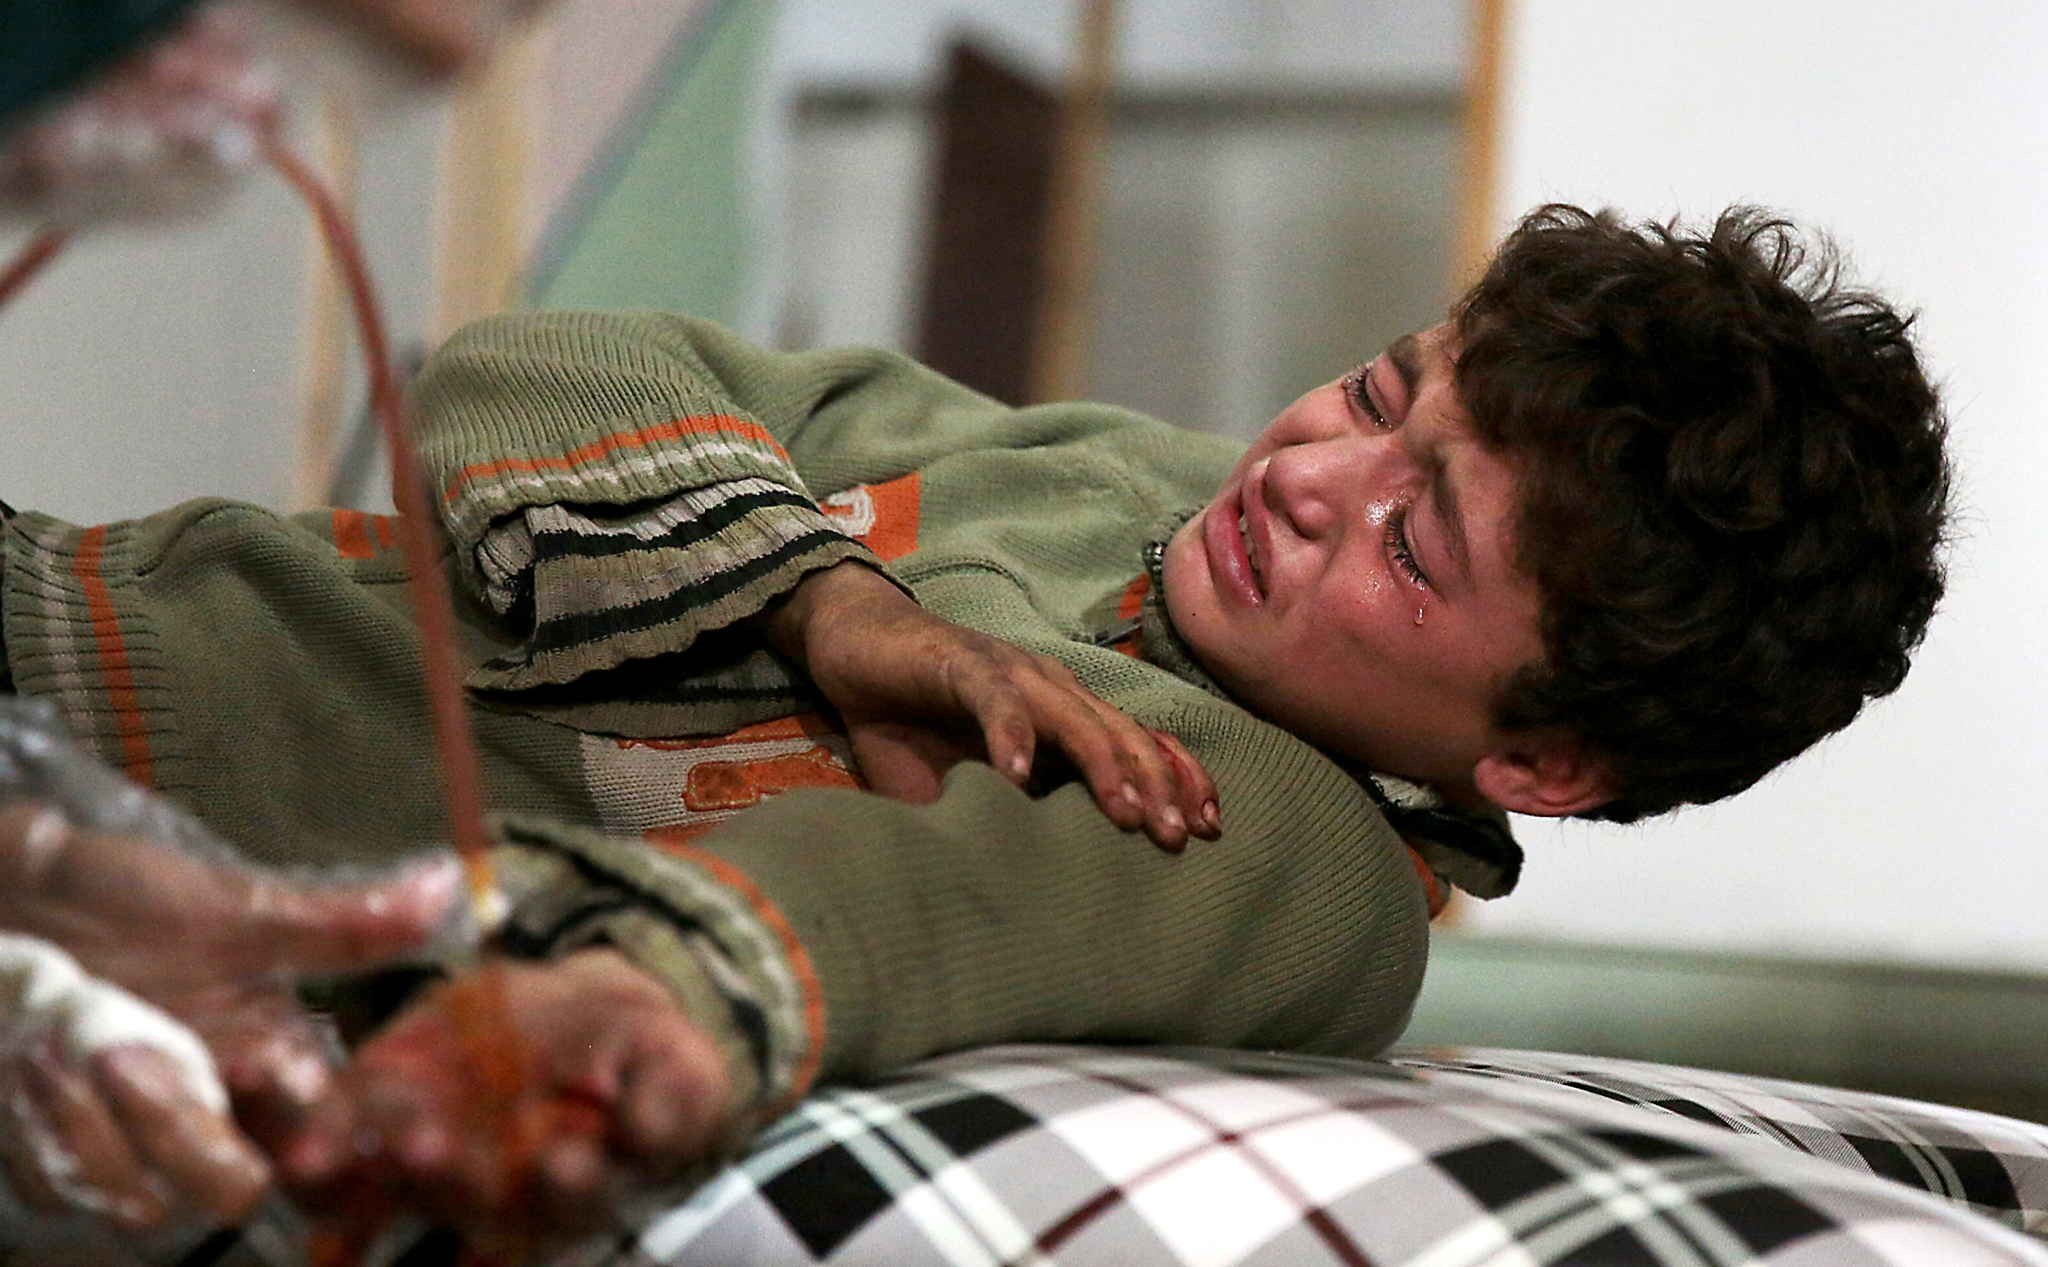 A wounded Syrian boy cries at a makeshif...A wounded Syrian boy cries at a makeshift hospital following a reported air strike by government forces in the rebel-held area of Douma, east of the capital Damascus, on November 18, 2015. AFP PHOTO / ABD DOUMANYABD DOUMANY/AFP/Getty Images